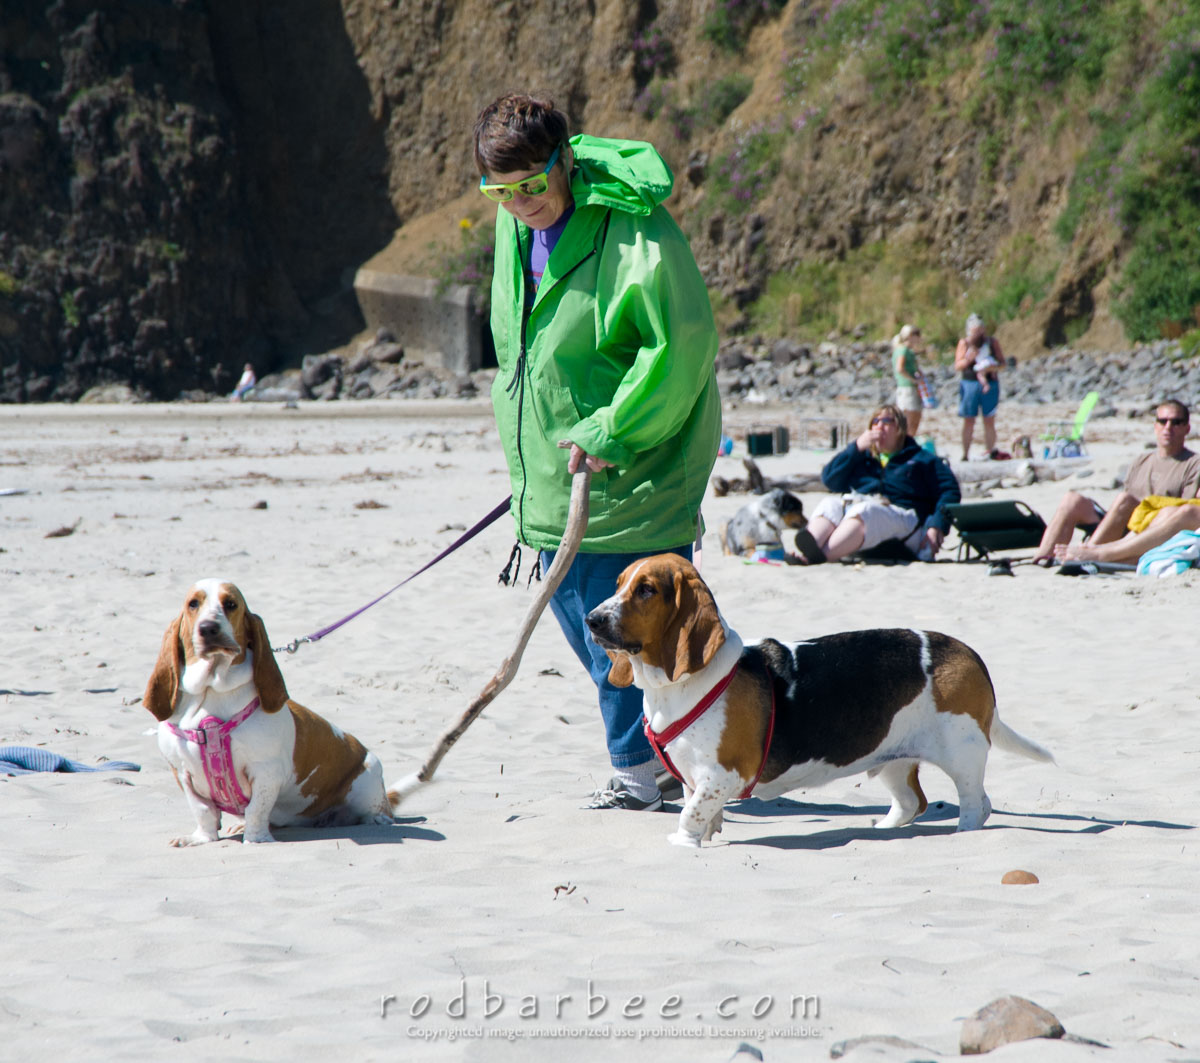 Barbee_110811_3_0558 |  Lady in green and her Basset hounds on the beach at Oceanside, OR. August 2011